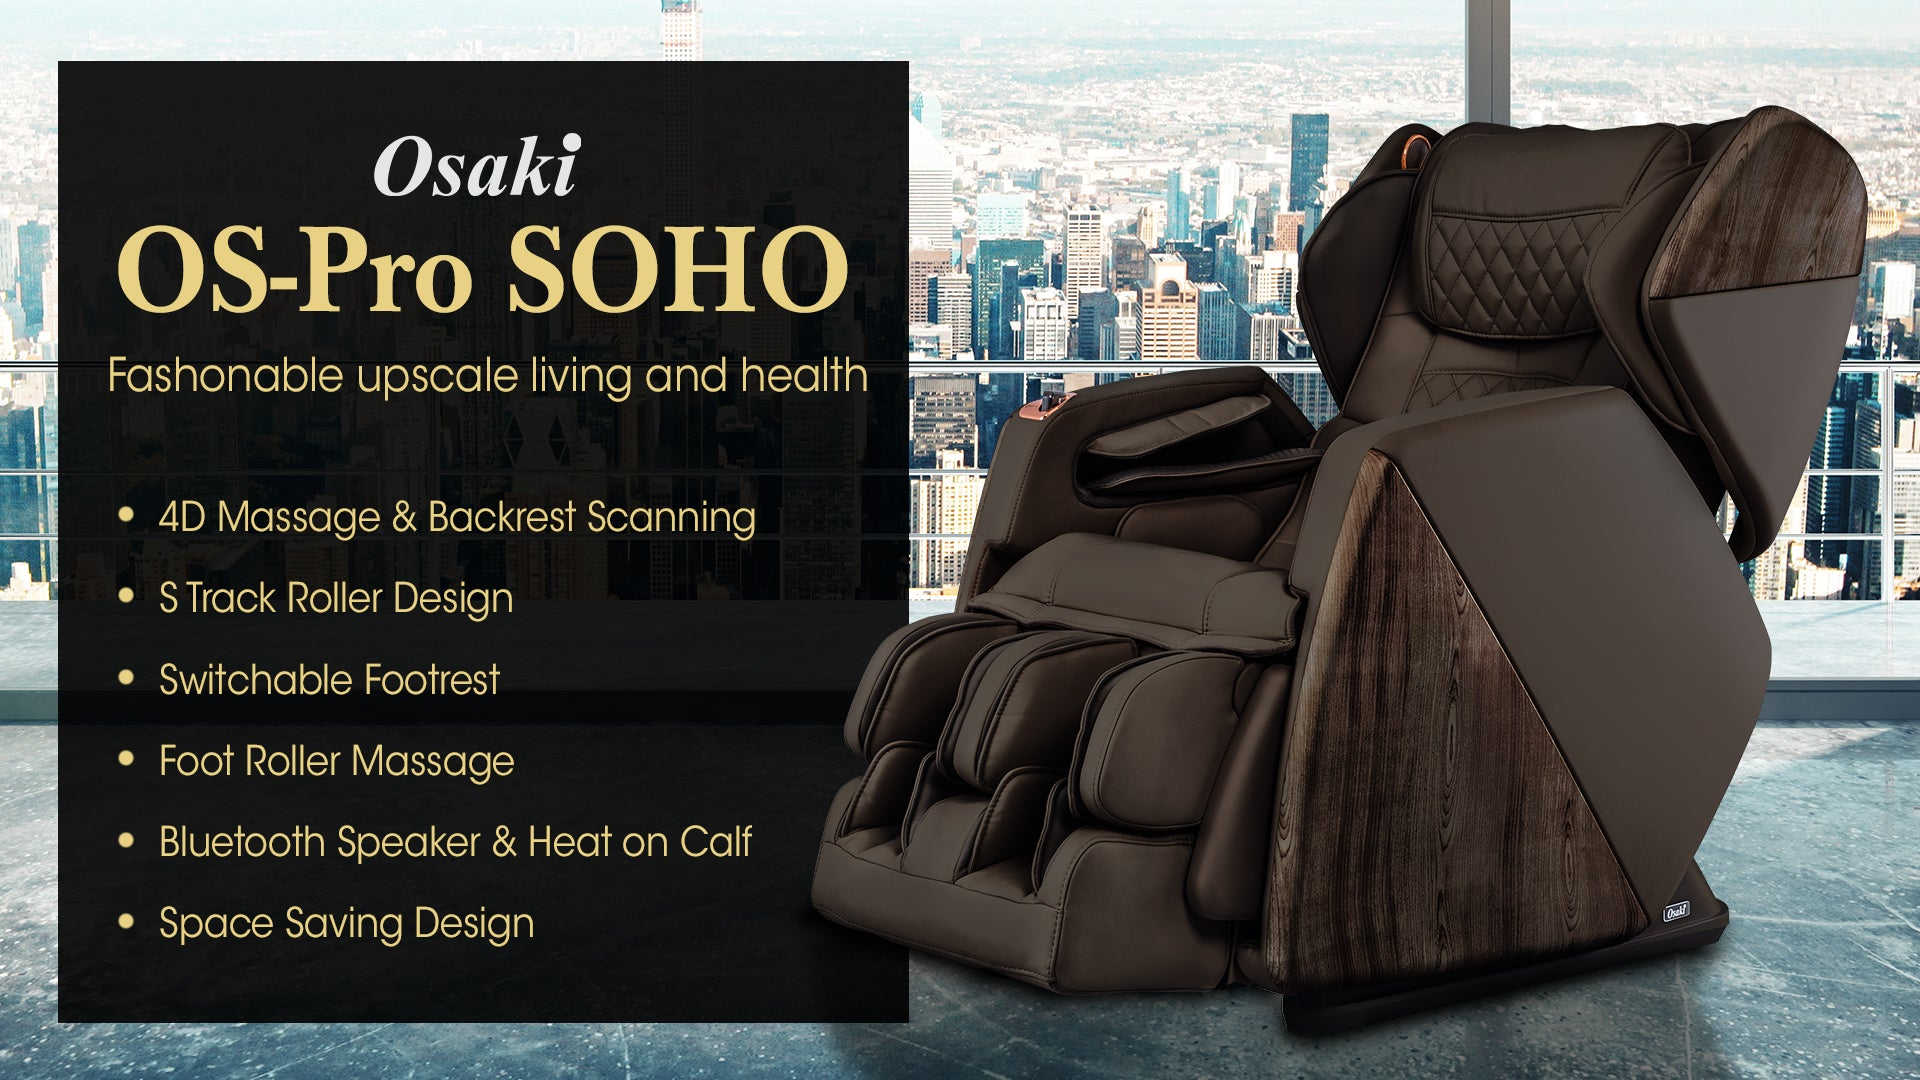 SOHO Banner - Fashonable upscale living and health